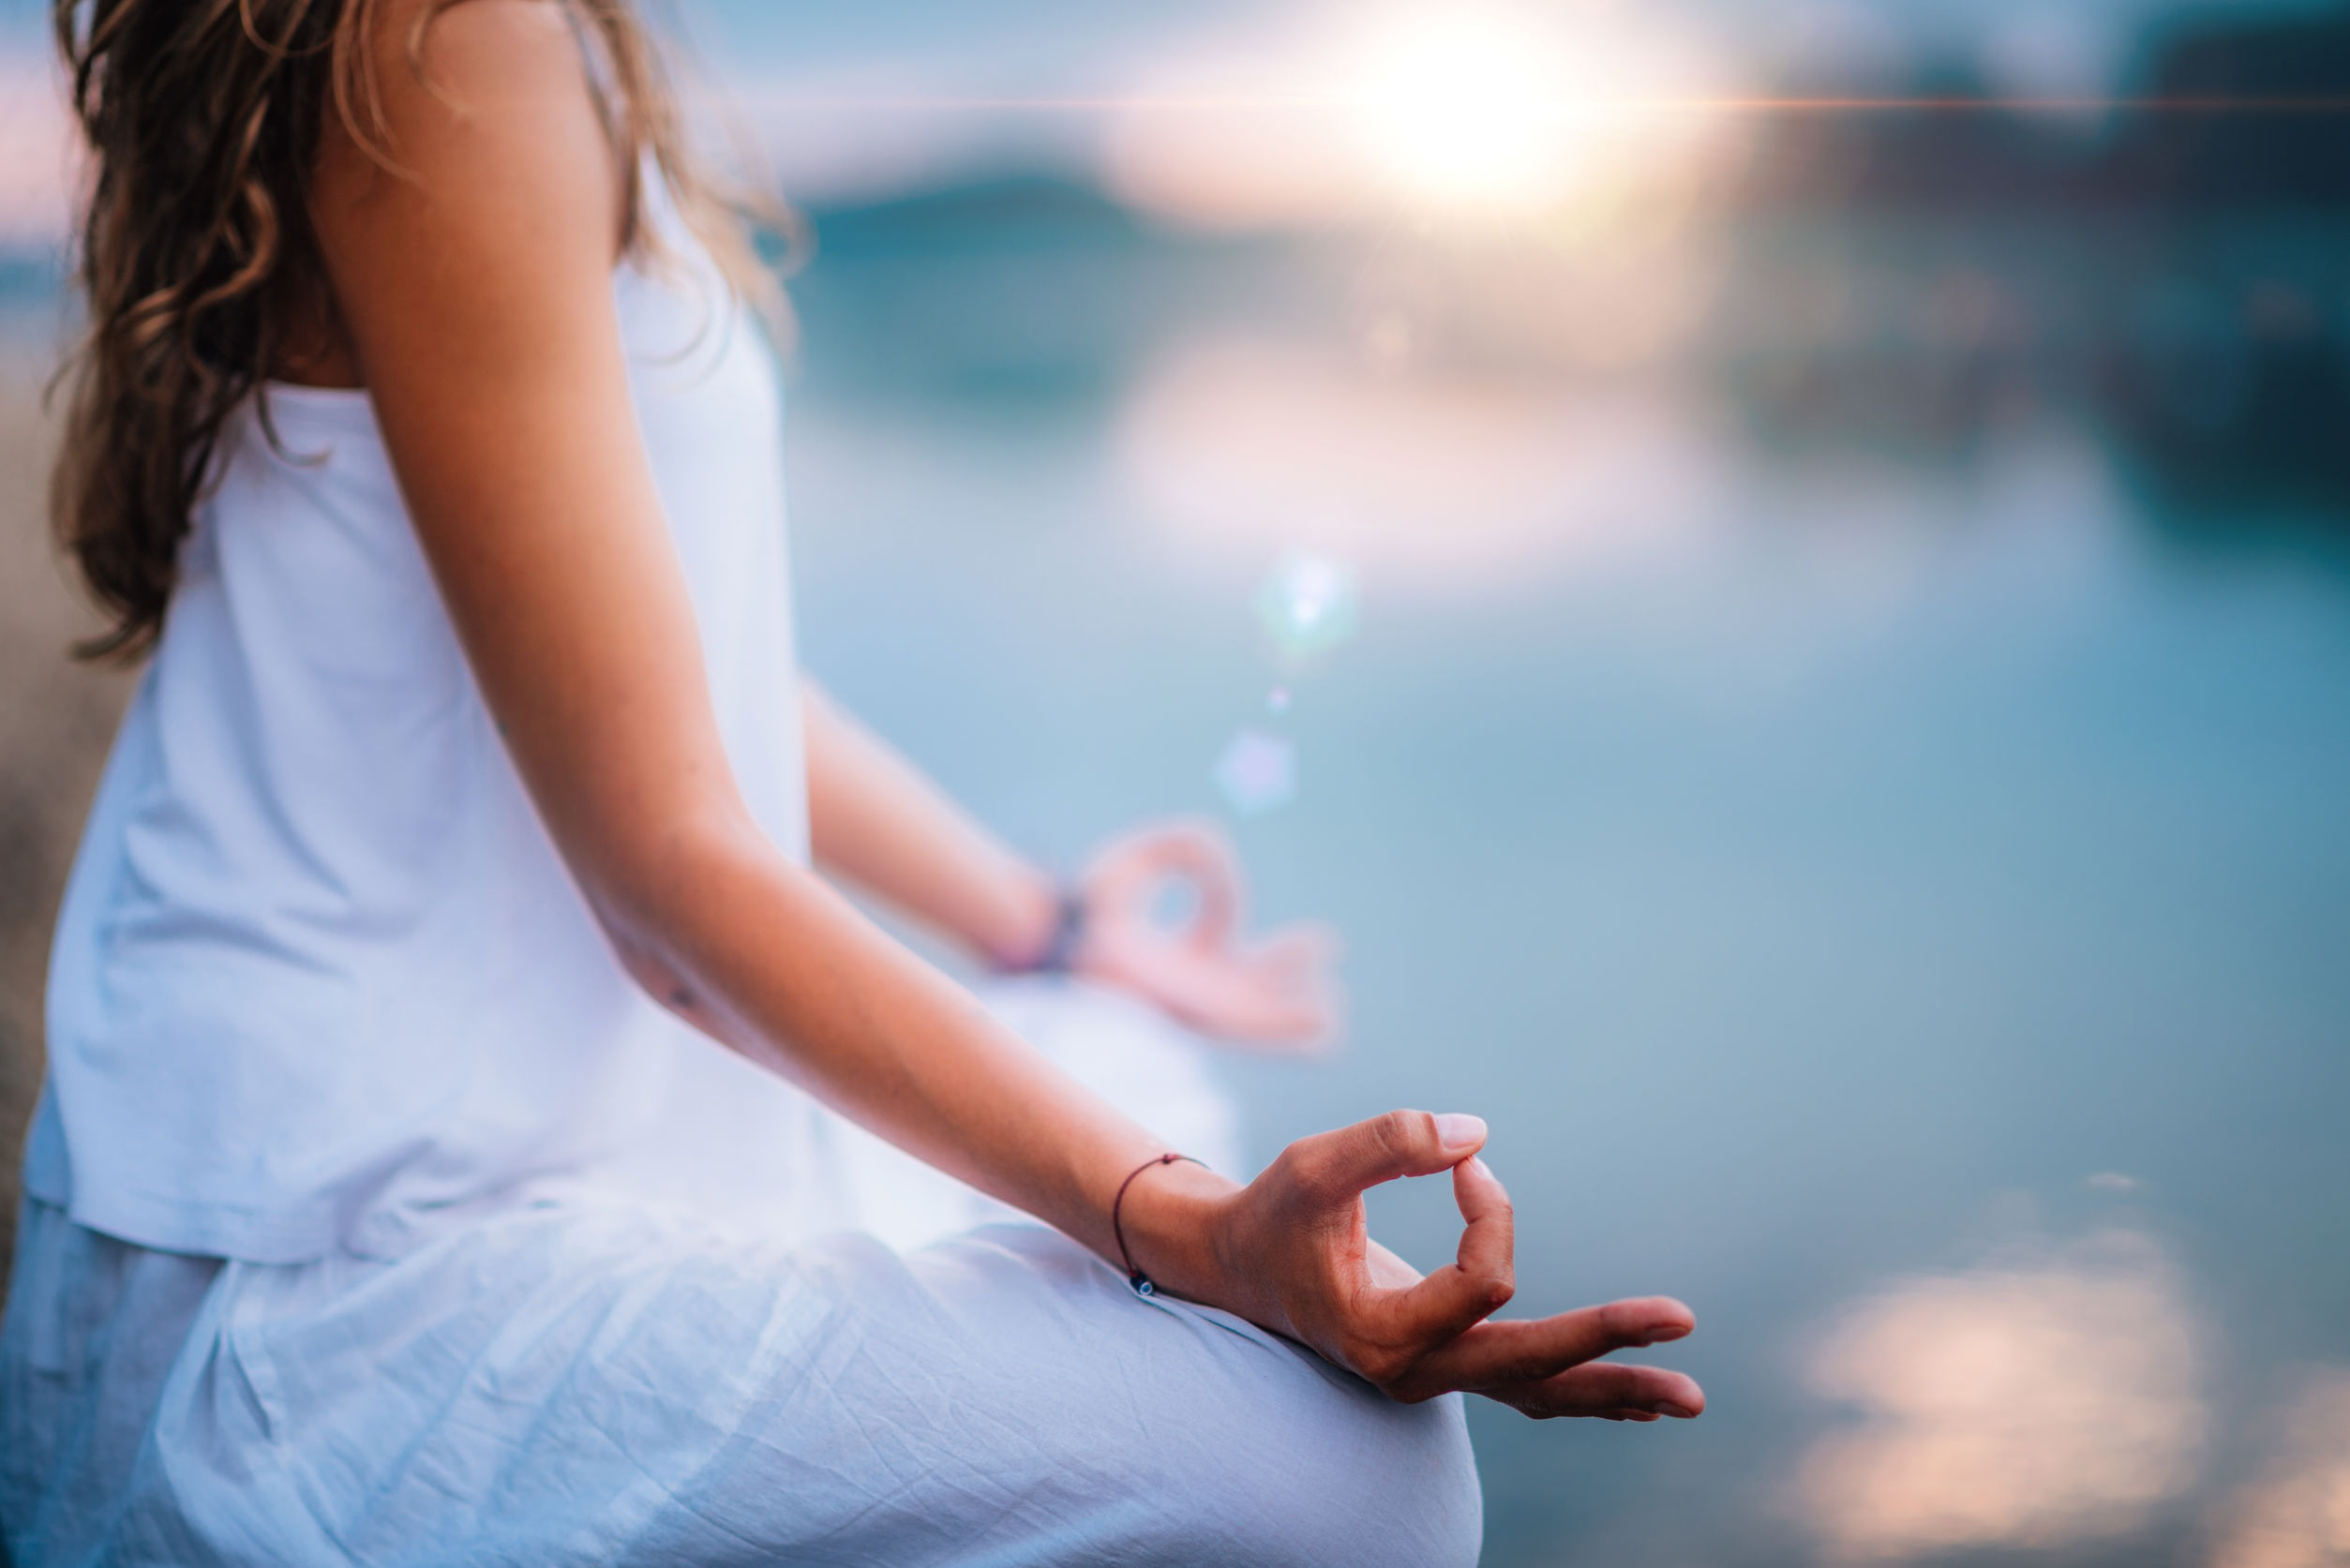 Meditation is a form of stress reduction and can be helpful in preventing canker sores